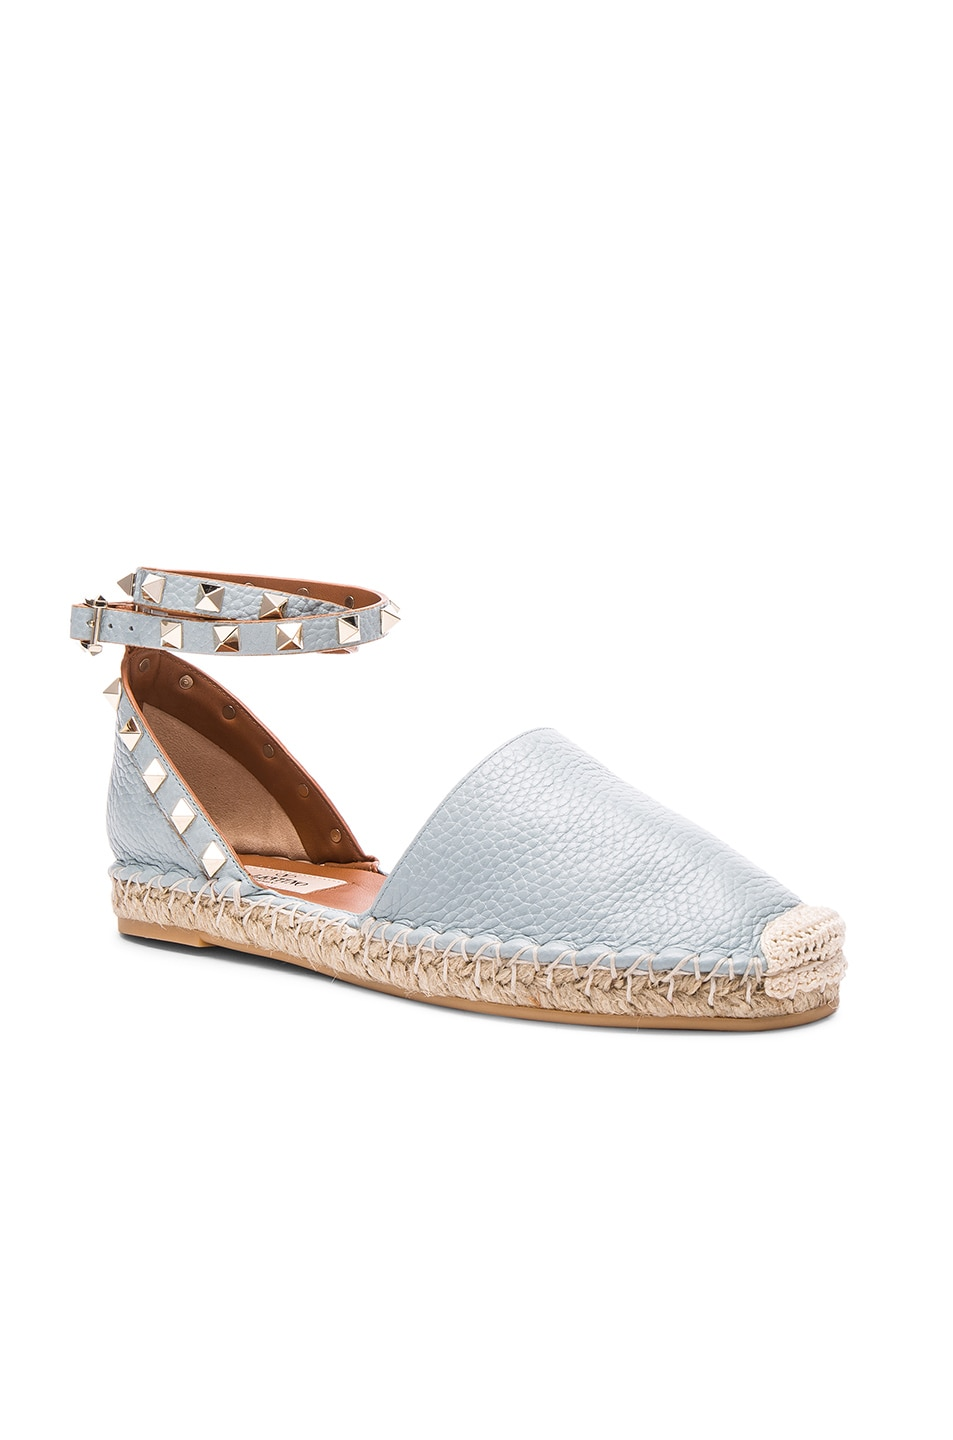 Image 2 of Valentino Rockstud Double Flat Leather Espadrilles in Sky Sorbet